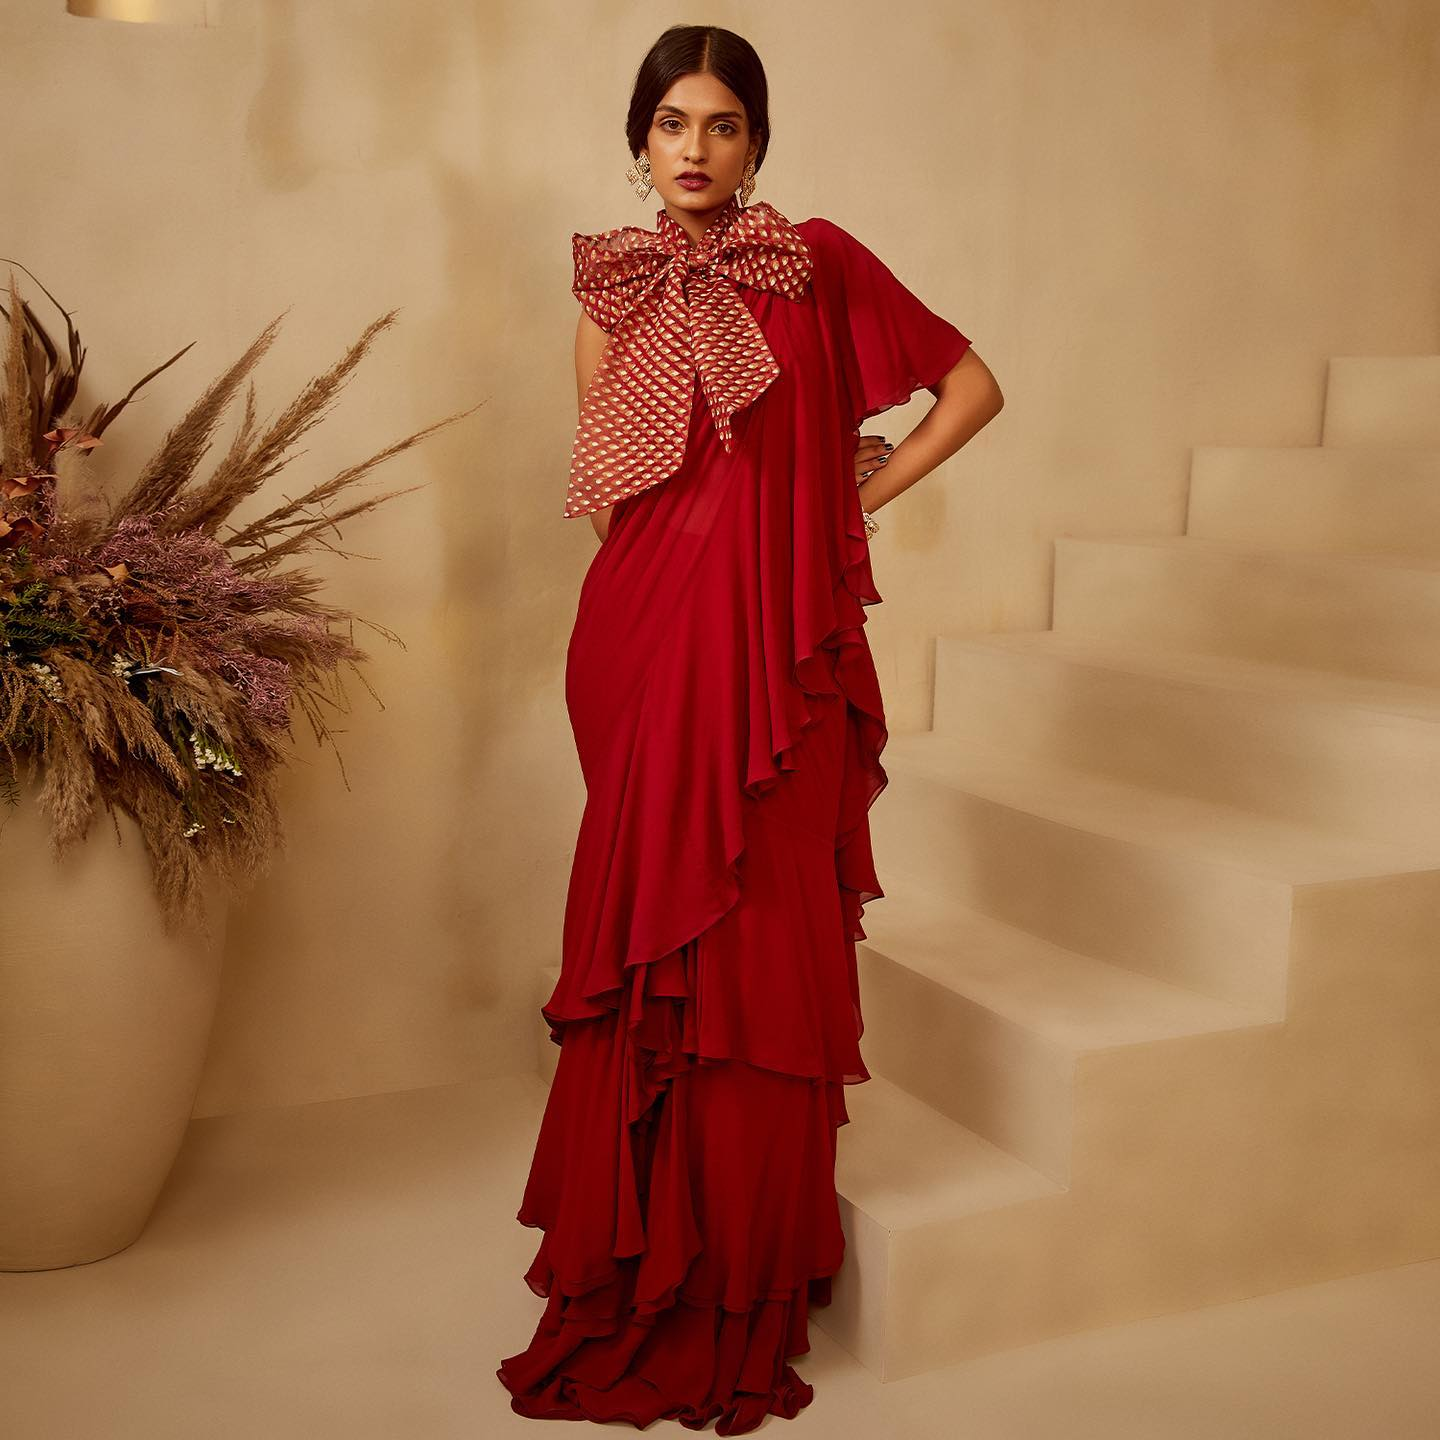 ZOYA.  Love | Life | Inspiration.  FESTIVE EDIT 2021.  Featuring uber chic layered ruffle saree with an organza bow-tie. 2021-10-21